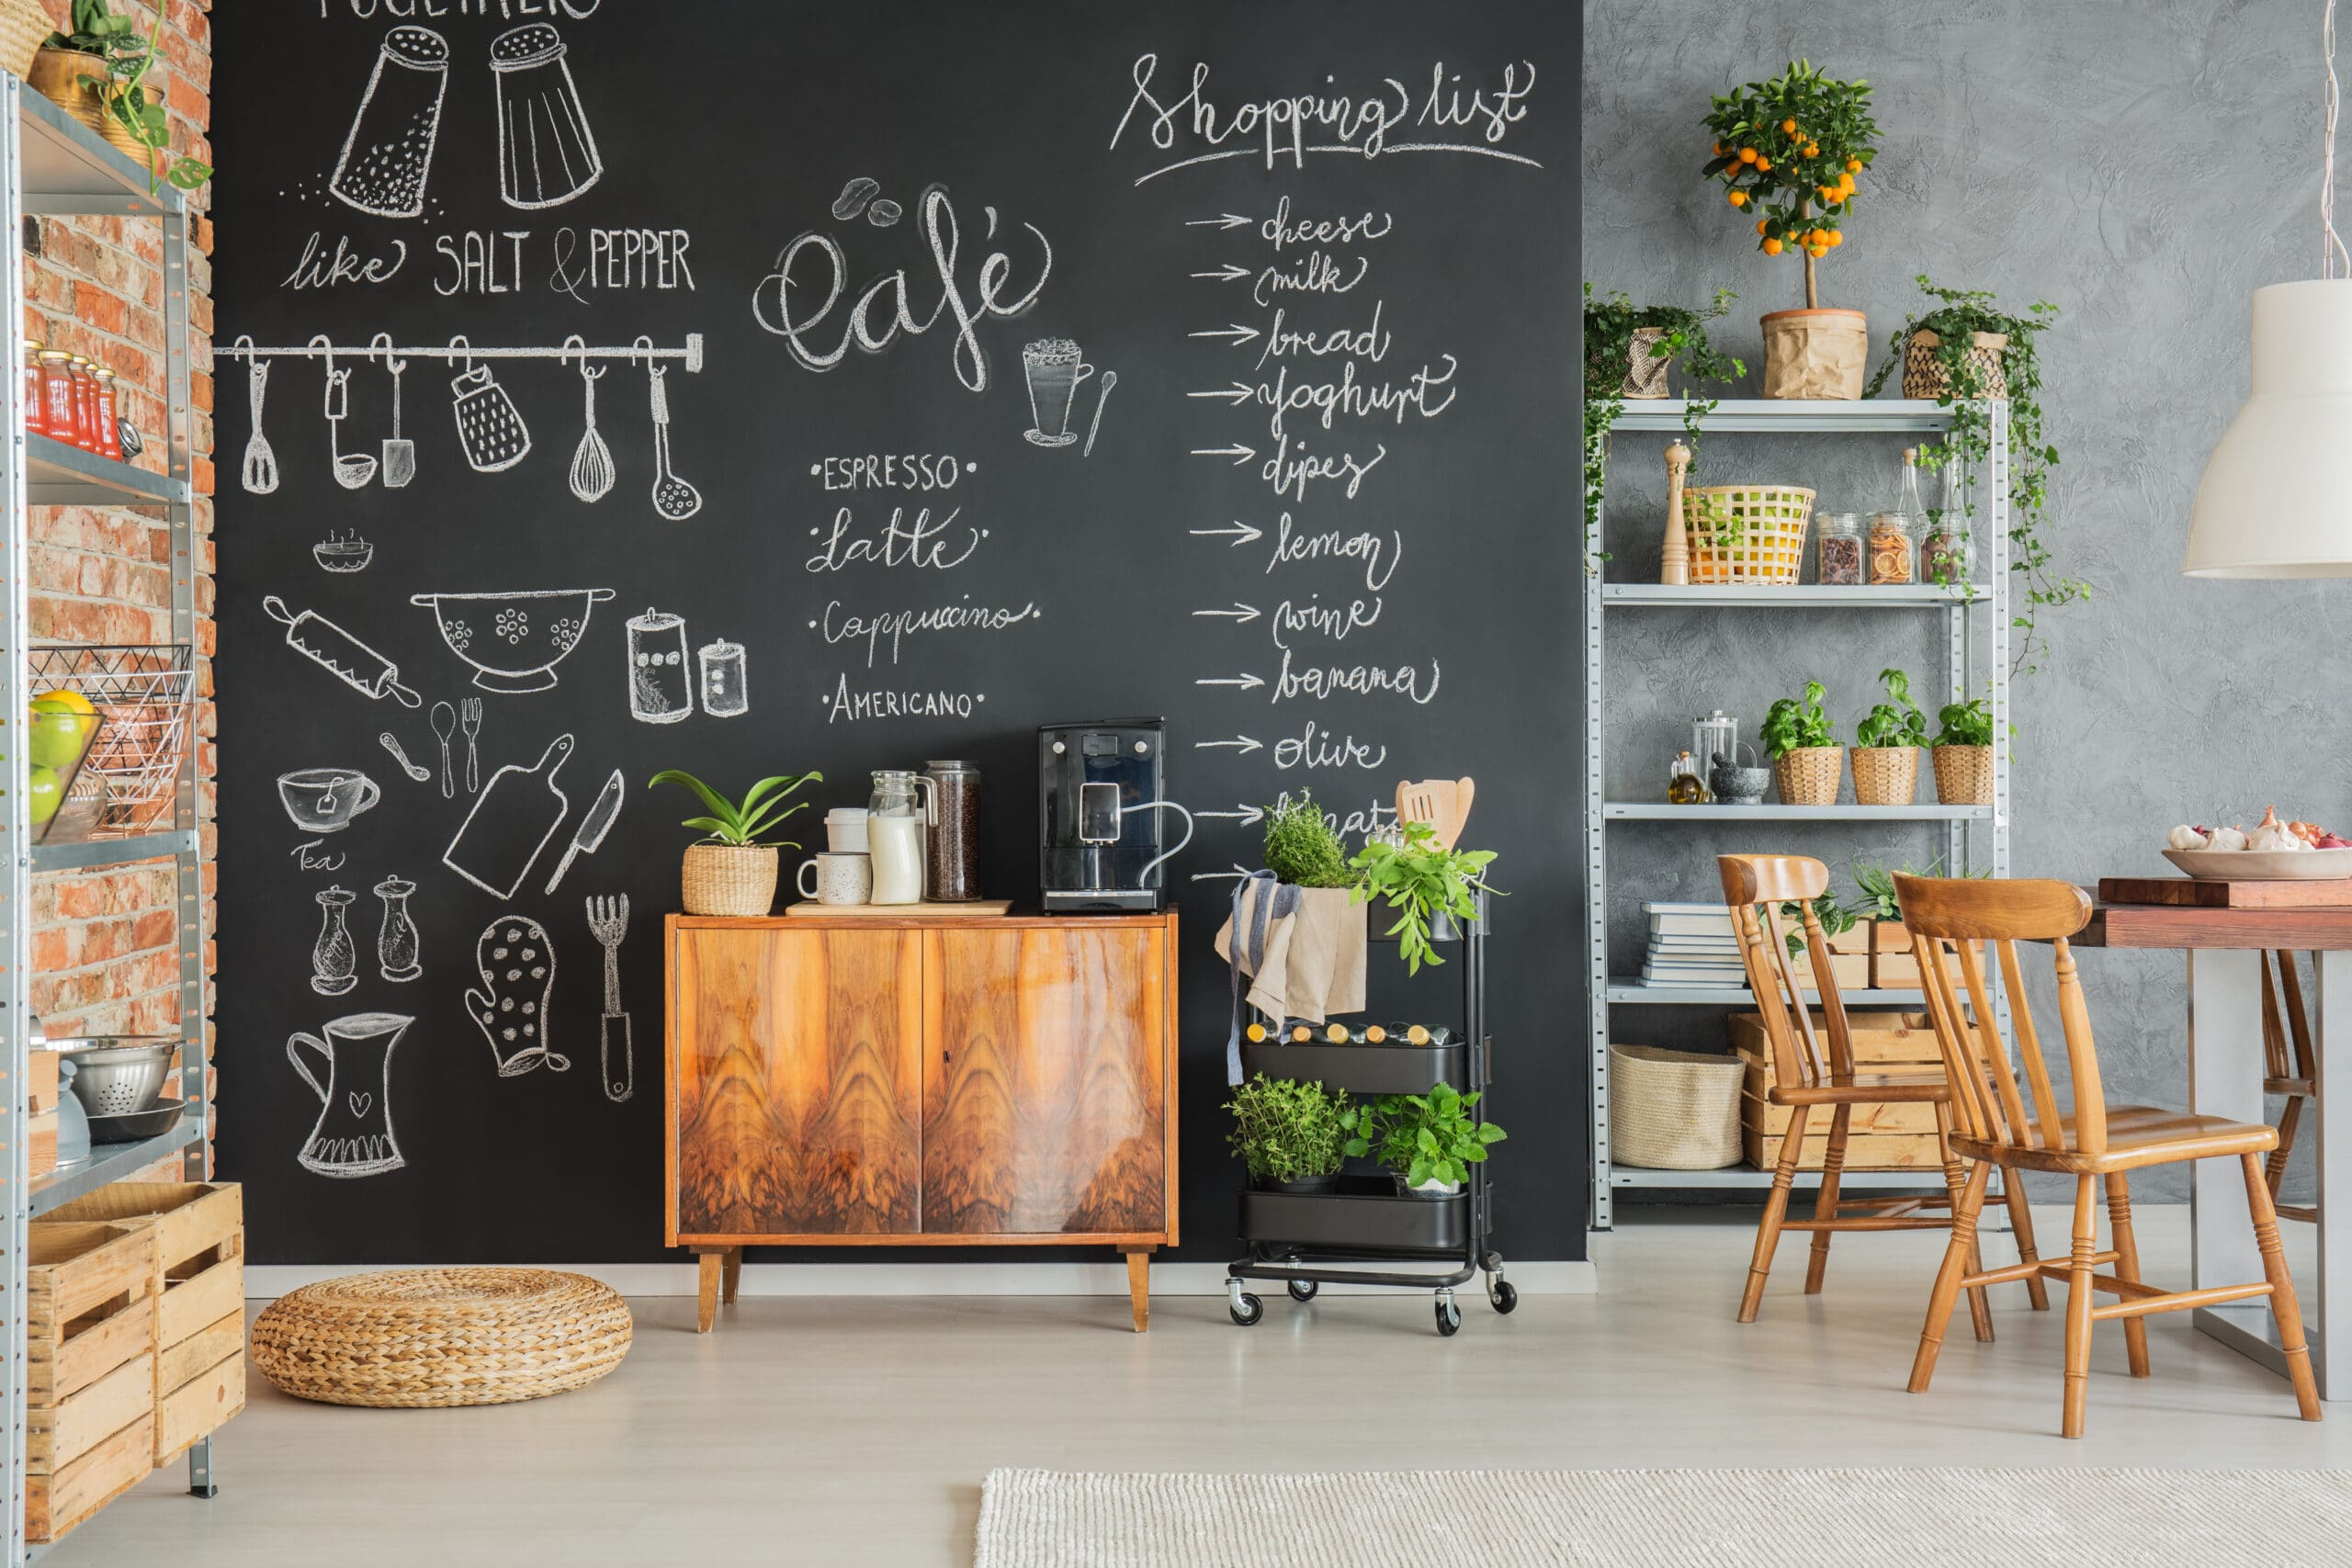 Things to consider before painting a chalkboard